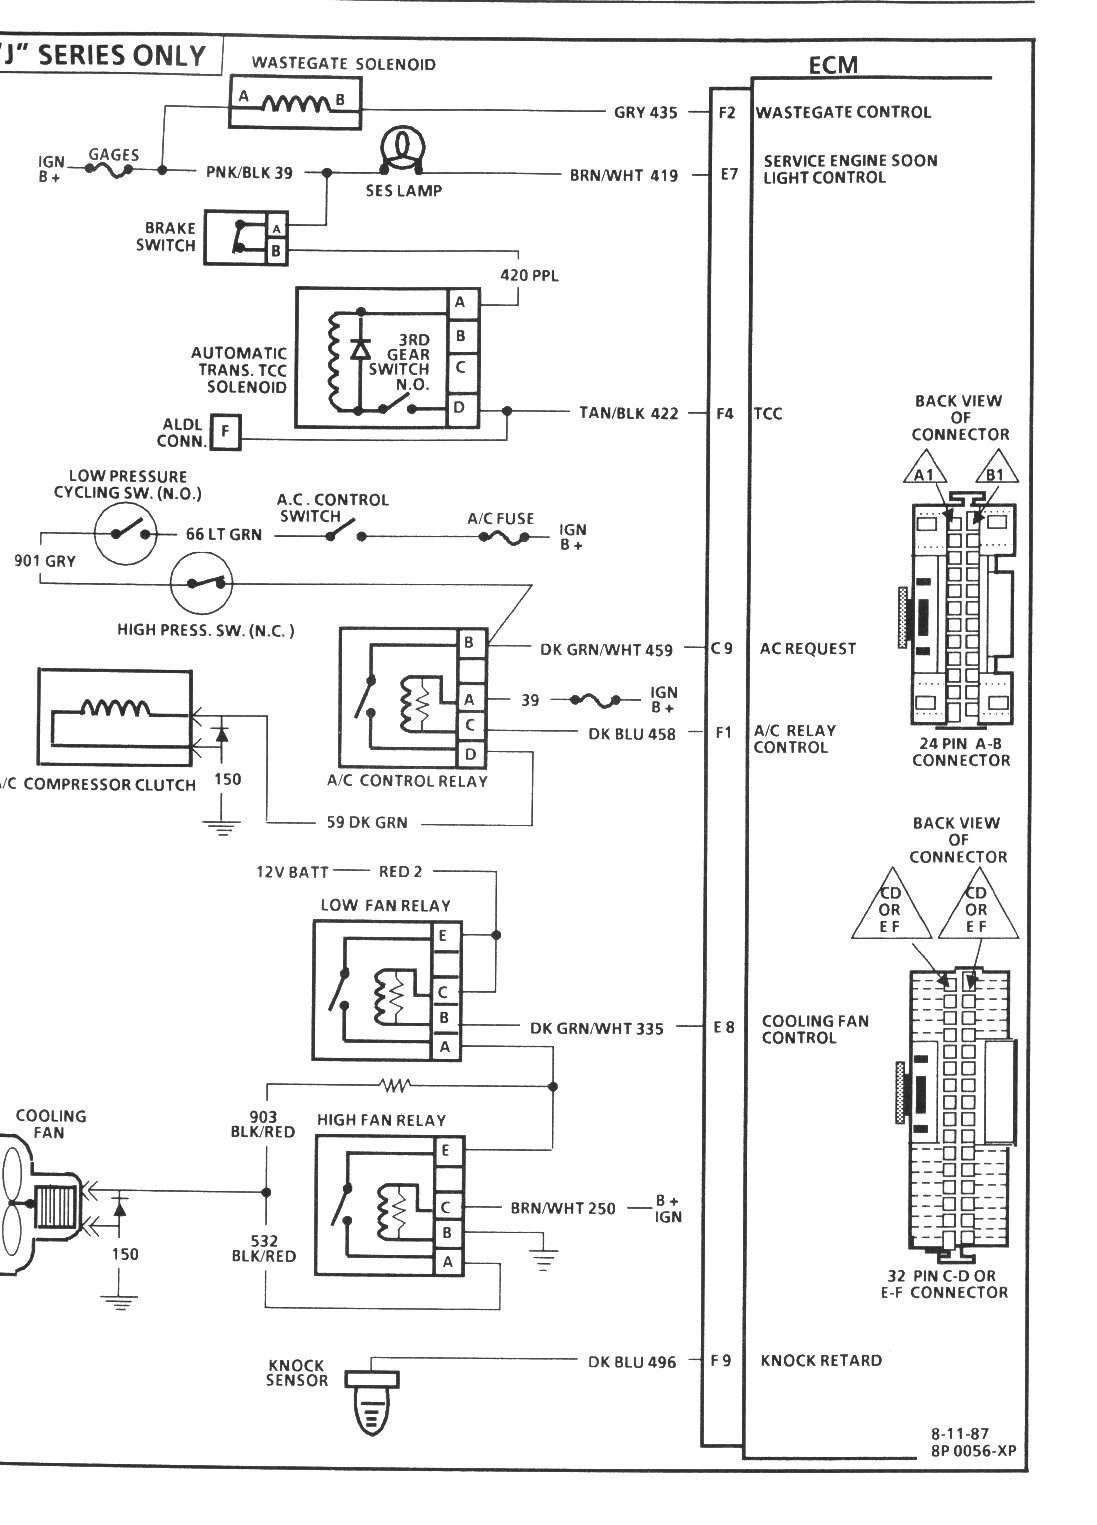 749sunbird3 nwstp forum alky control wiring diagram at eliteediting.co